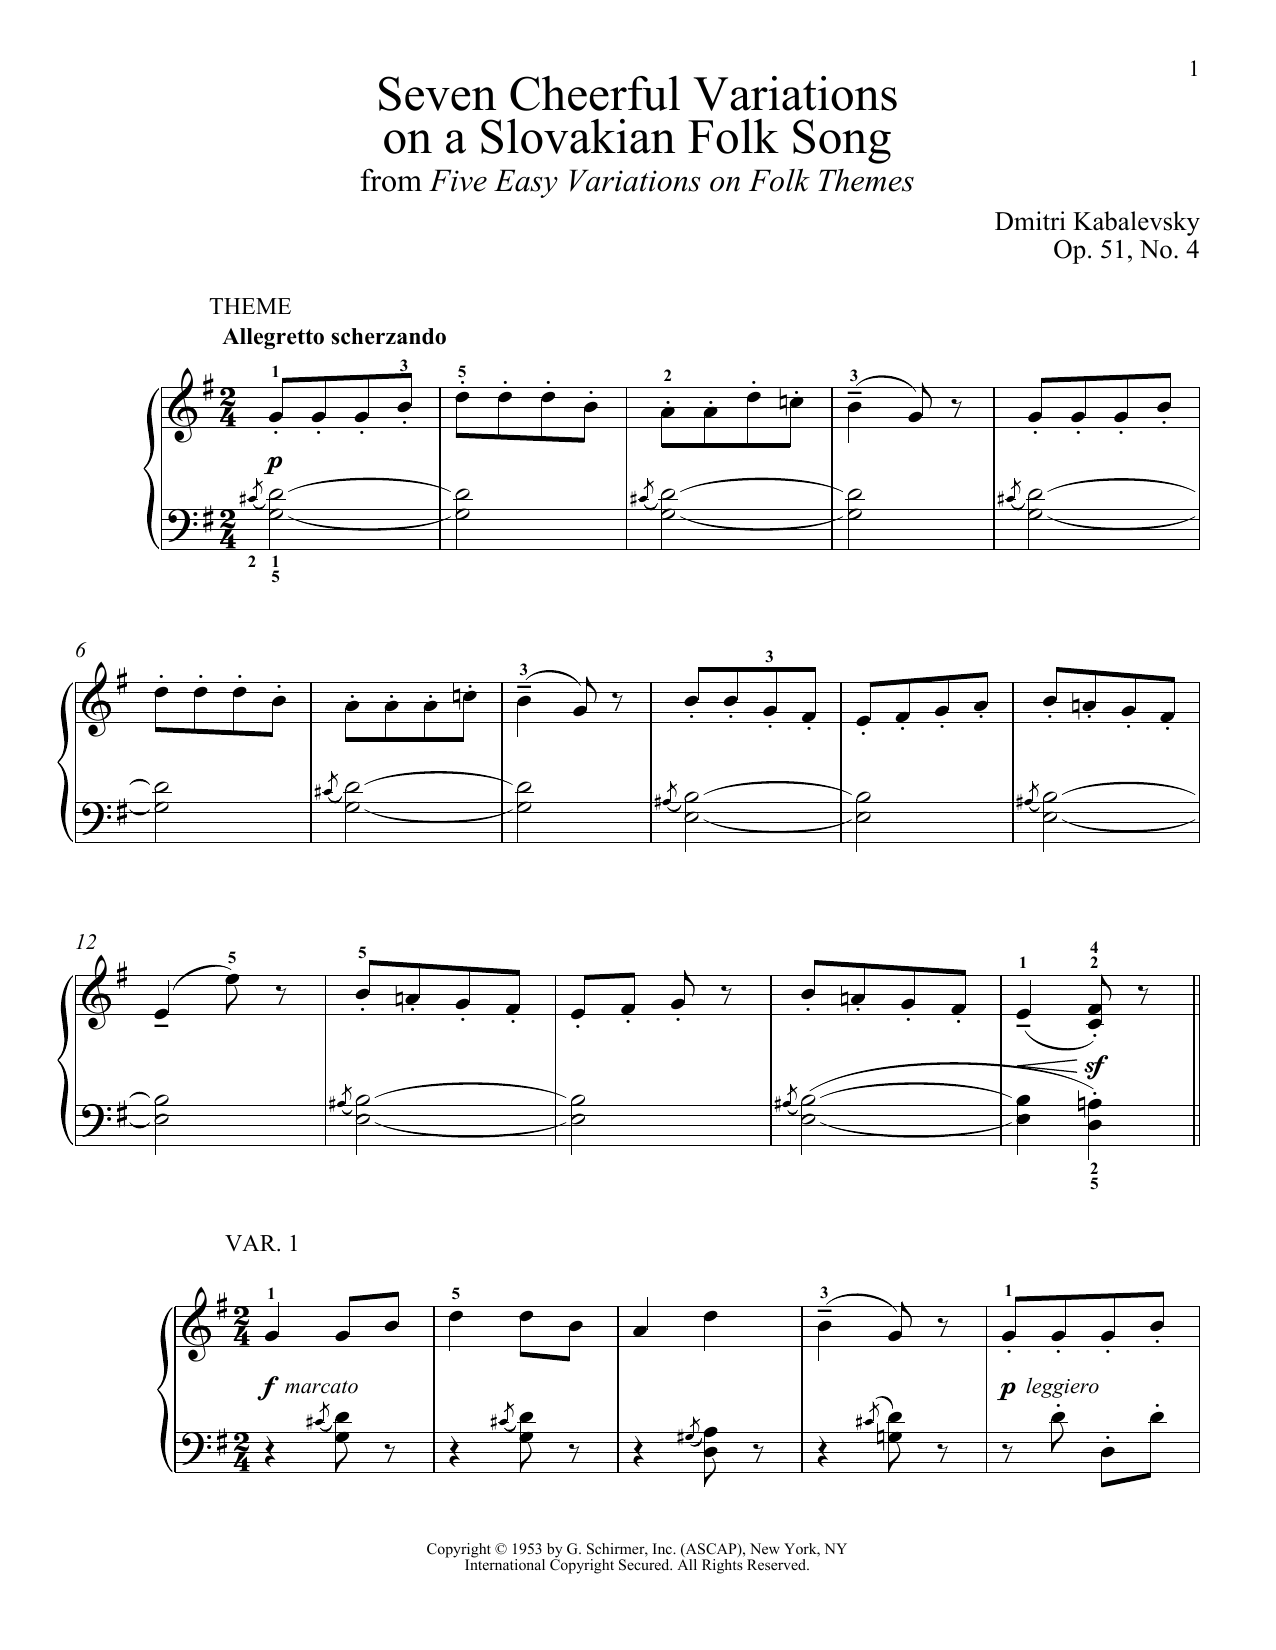 Dmitri Kabalevsky Seven Cheerful Variations On A Slovakian Folk Song, Op. 51, No. 4 sheet music notes and chords. Download Printable PDF.